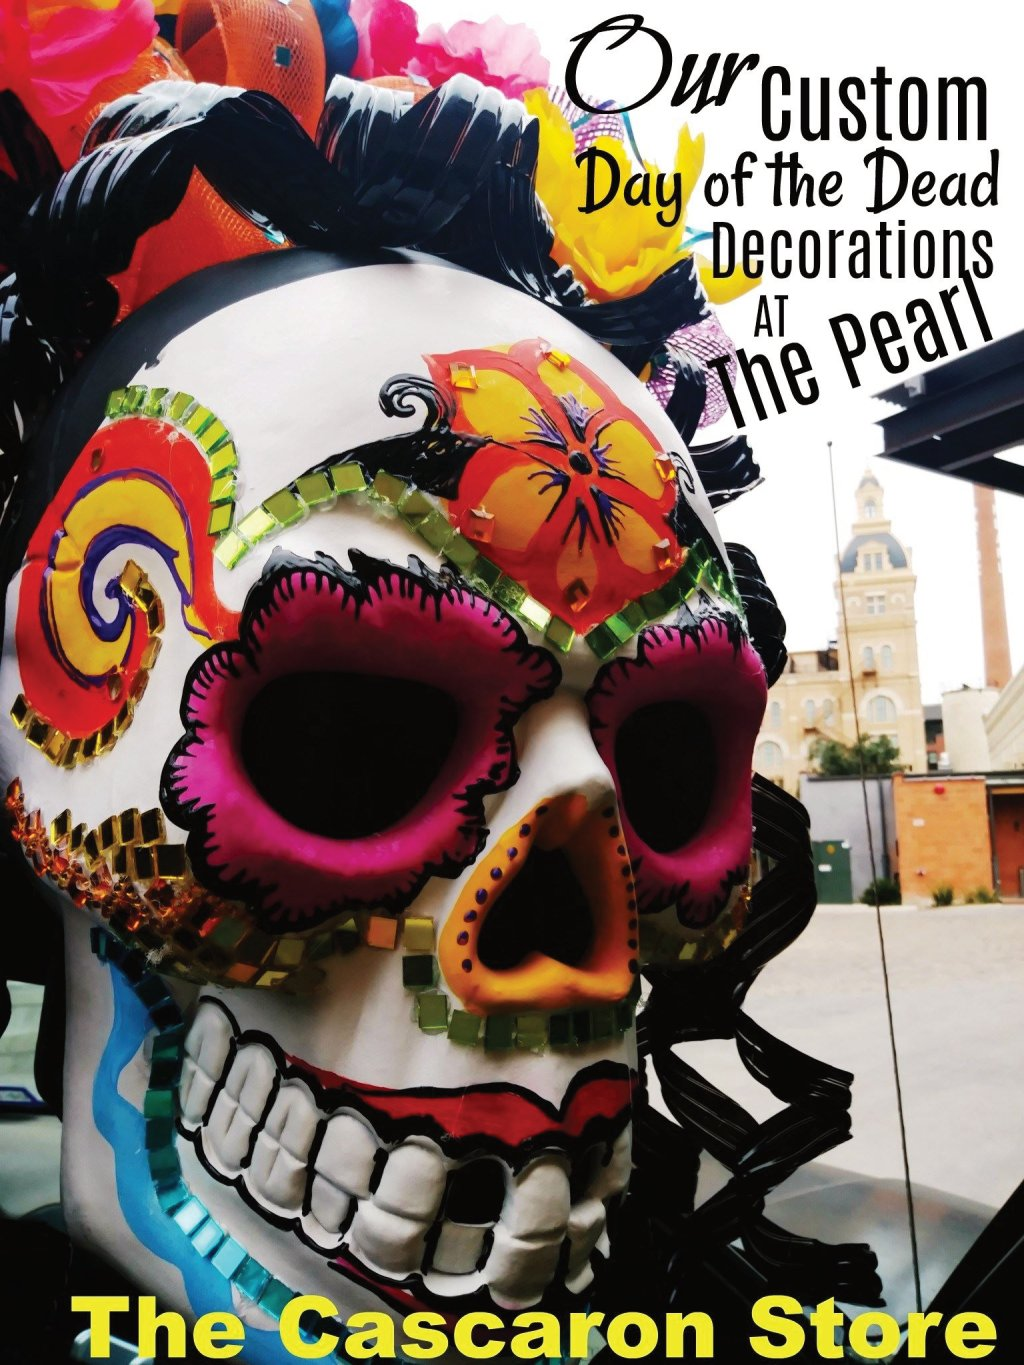 day of the dead large custom display by the cascaron store for parade float in texas